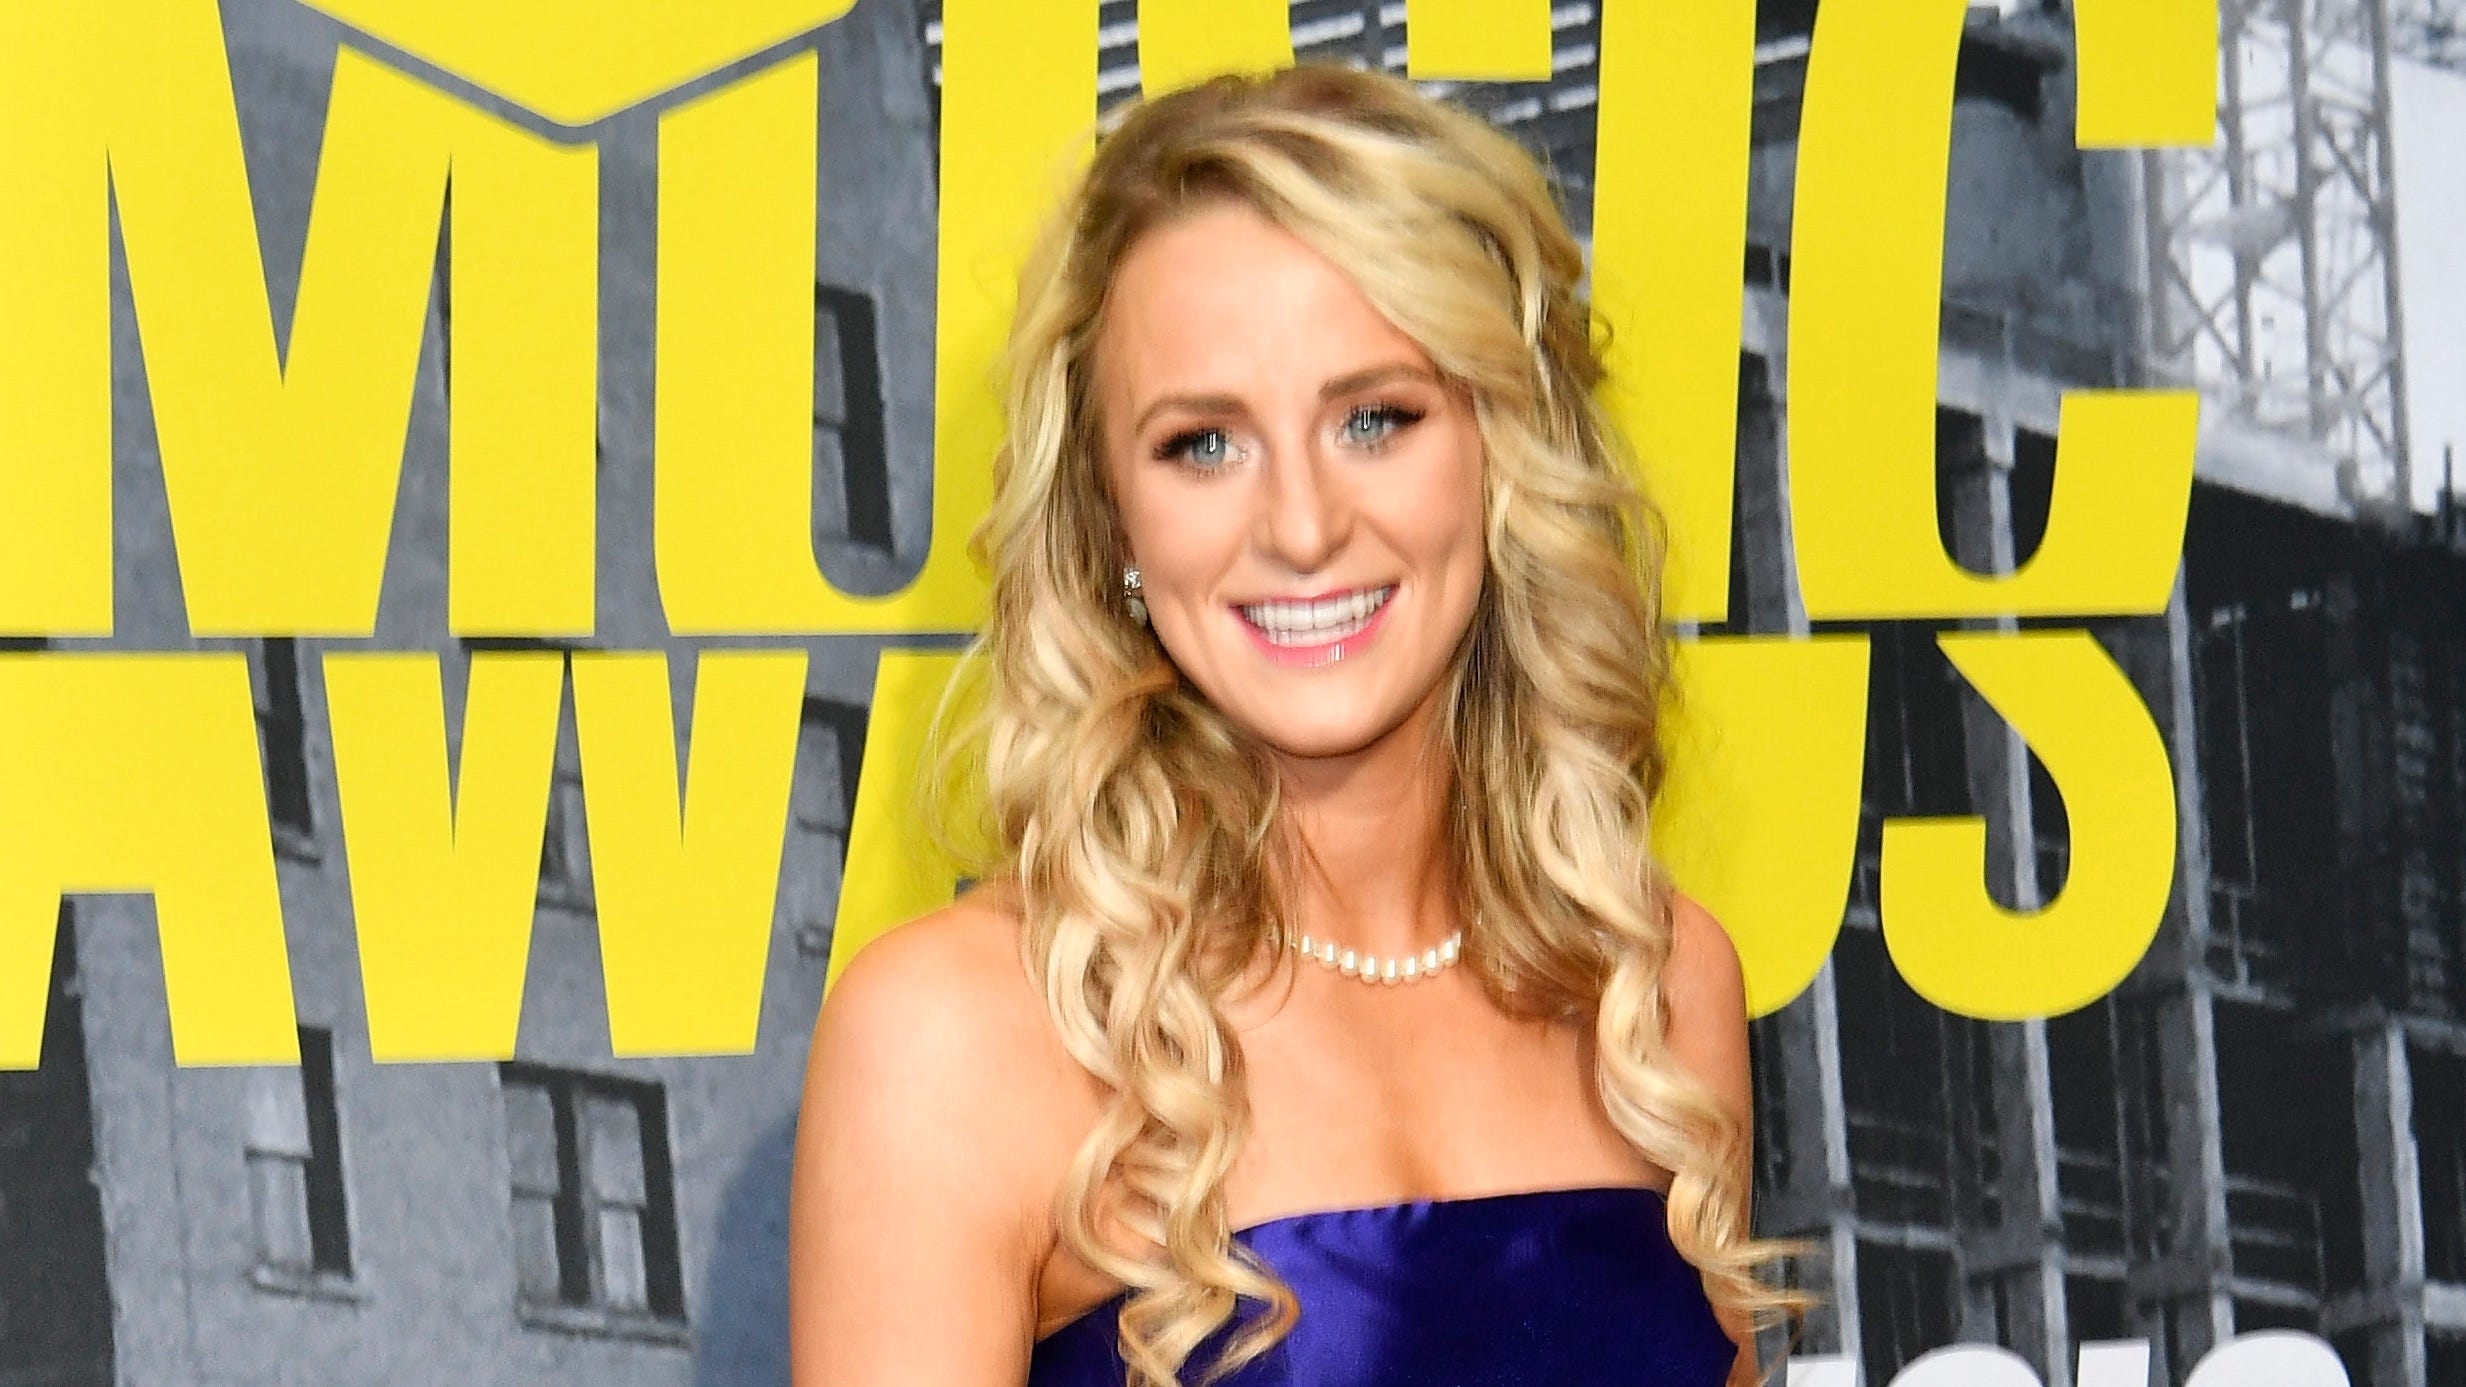 'Teen Mom 2' star Leah Messer's daughter hospitalized: 'Keep our girl in your prayers'